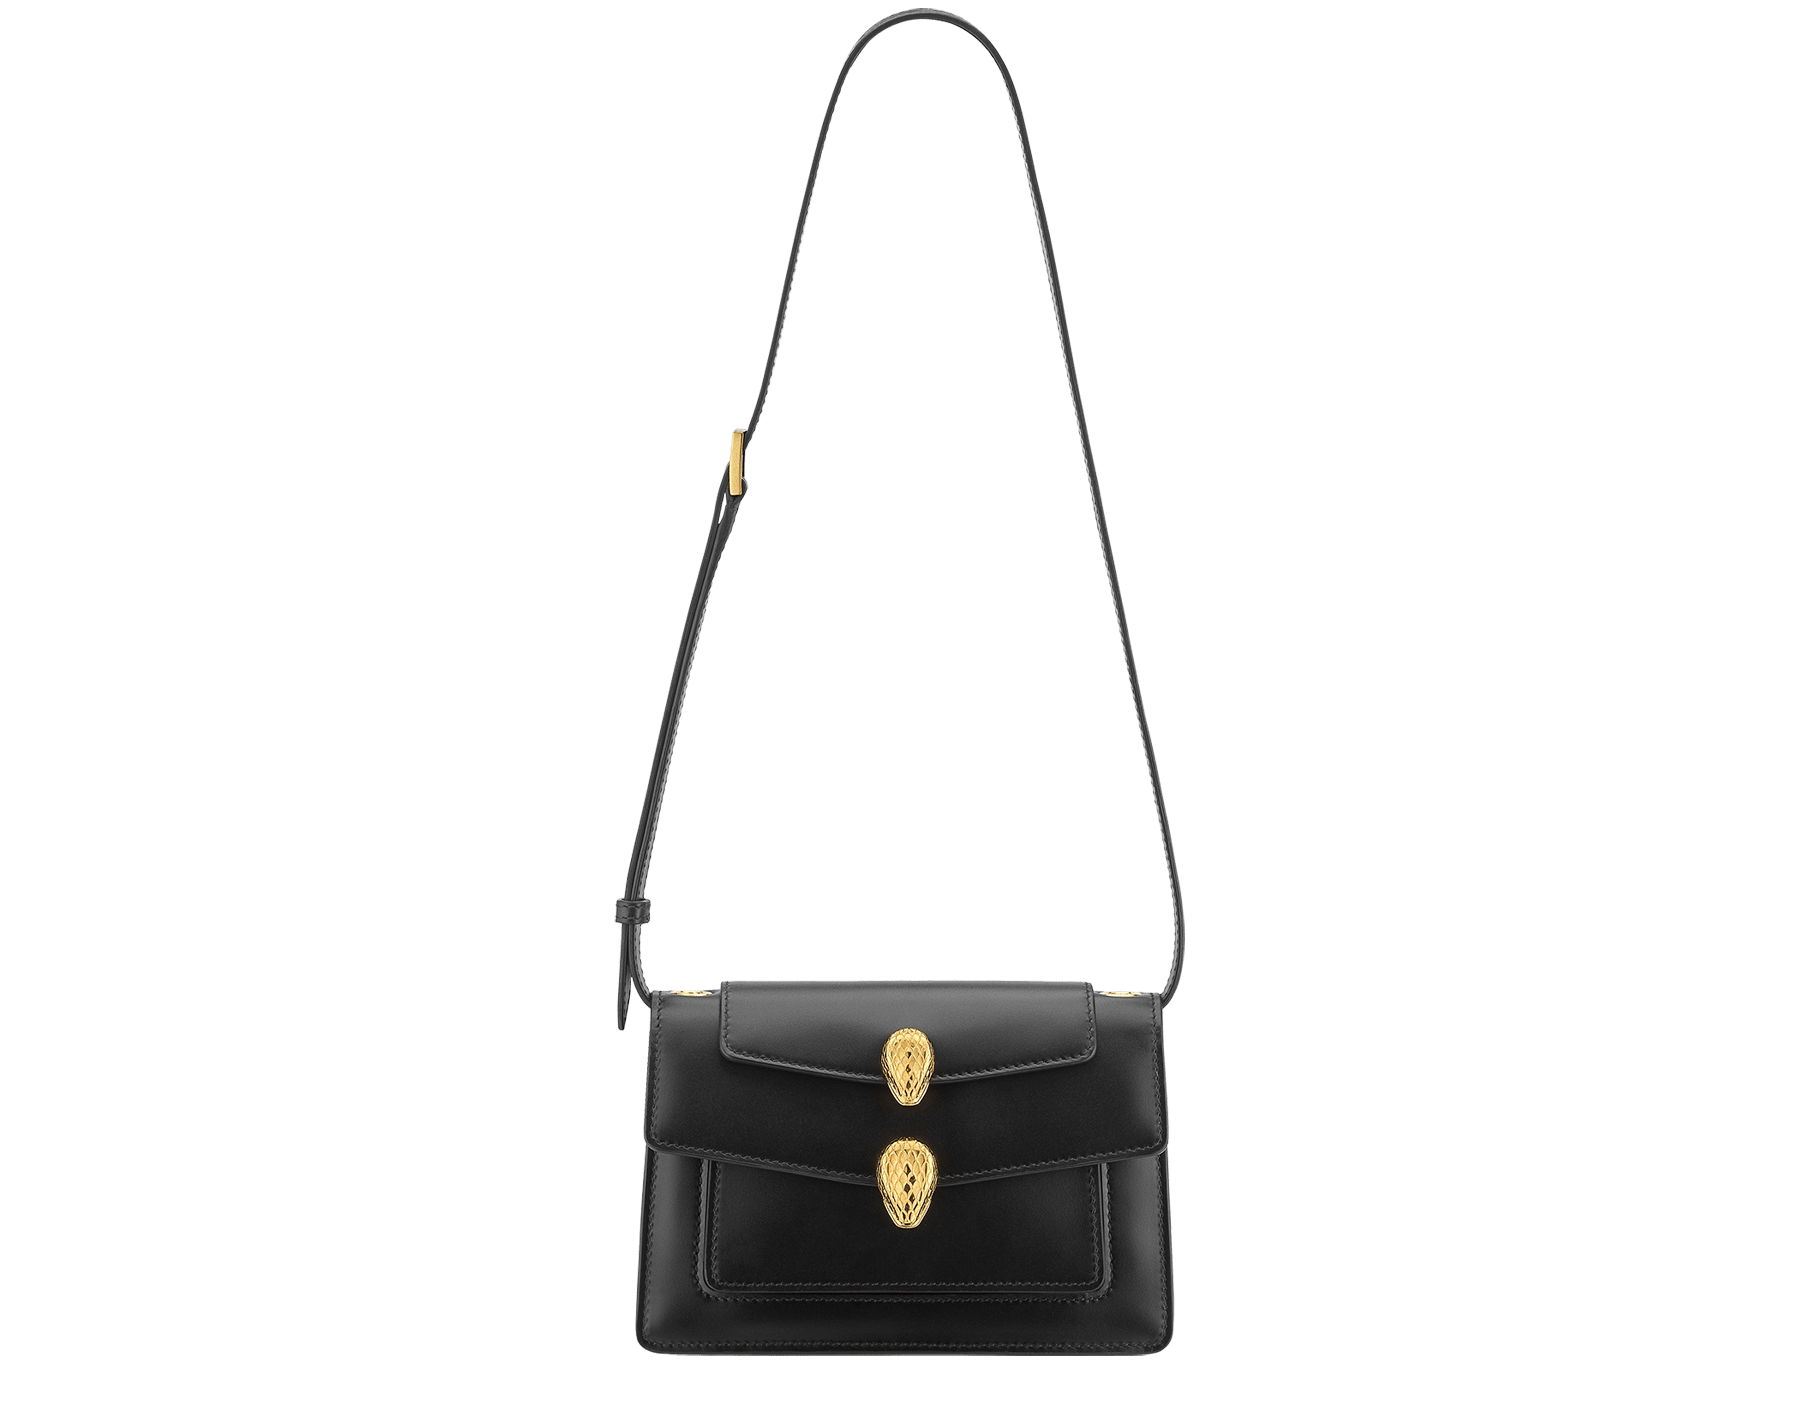 Alexander Wang x Bvlgari belt bag in smooth black calf leather. New double Serpenti head closure in antique gold plated brass with tempting red enamel eyes. Limited edition. 288737 image 5